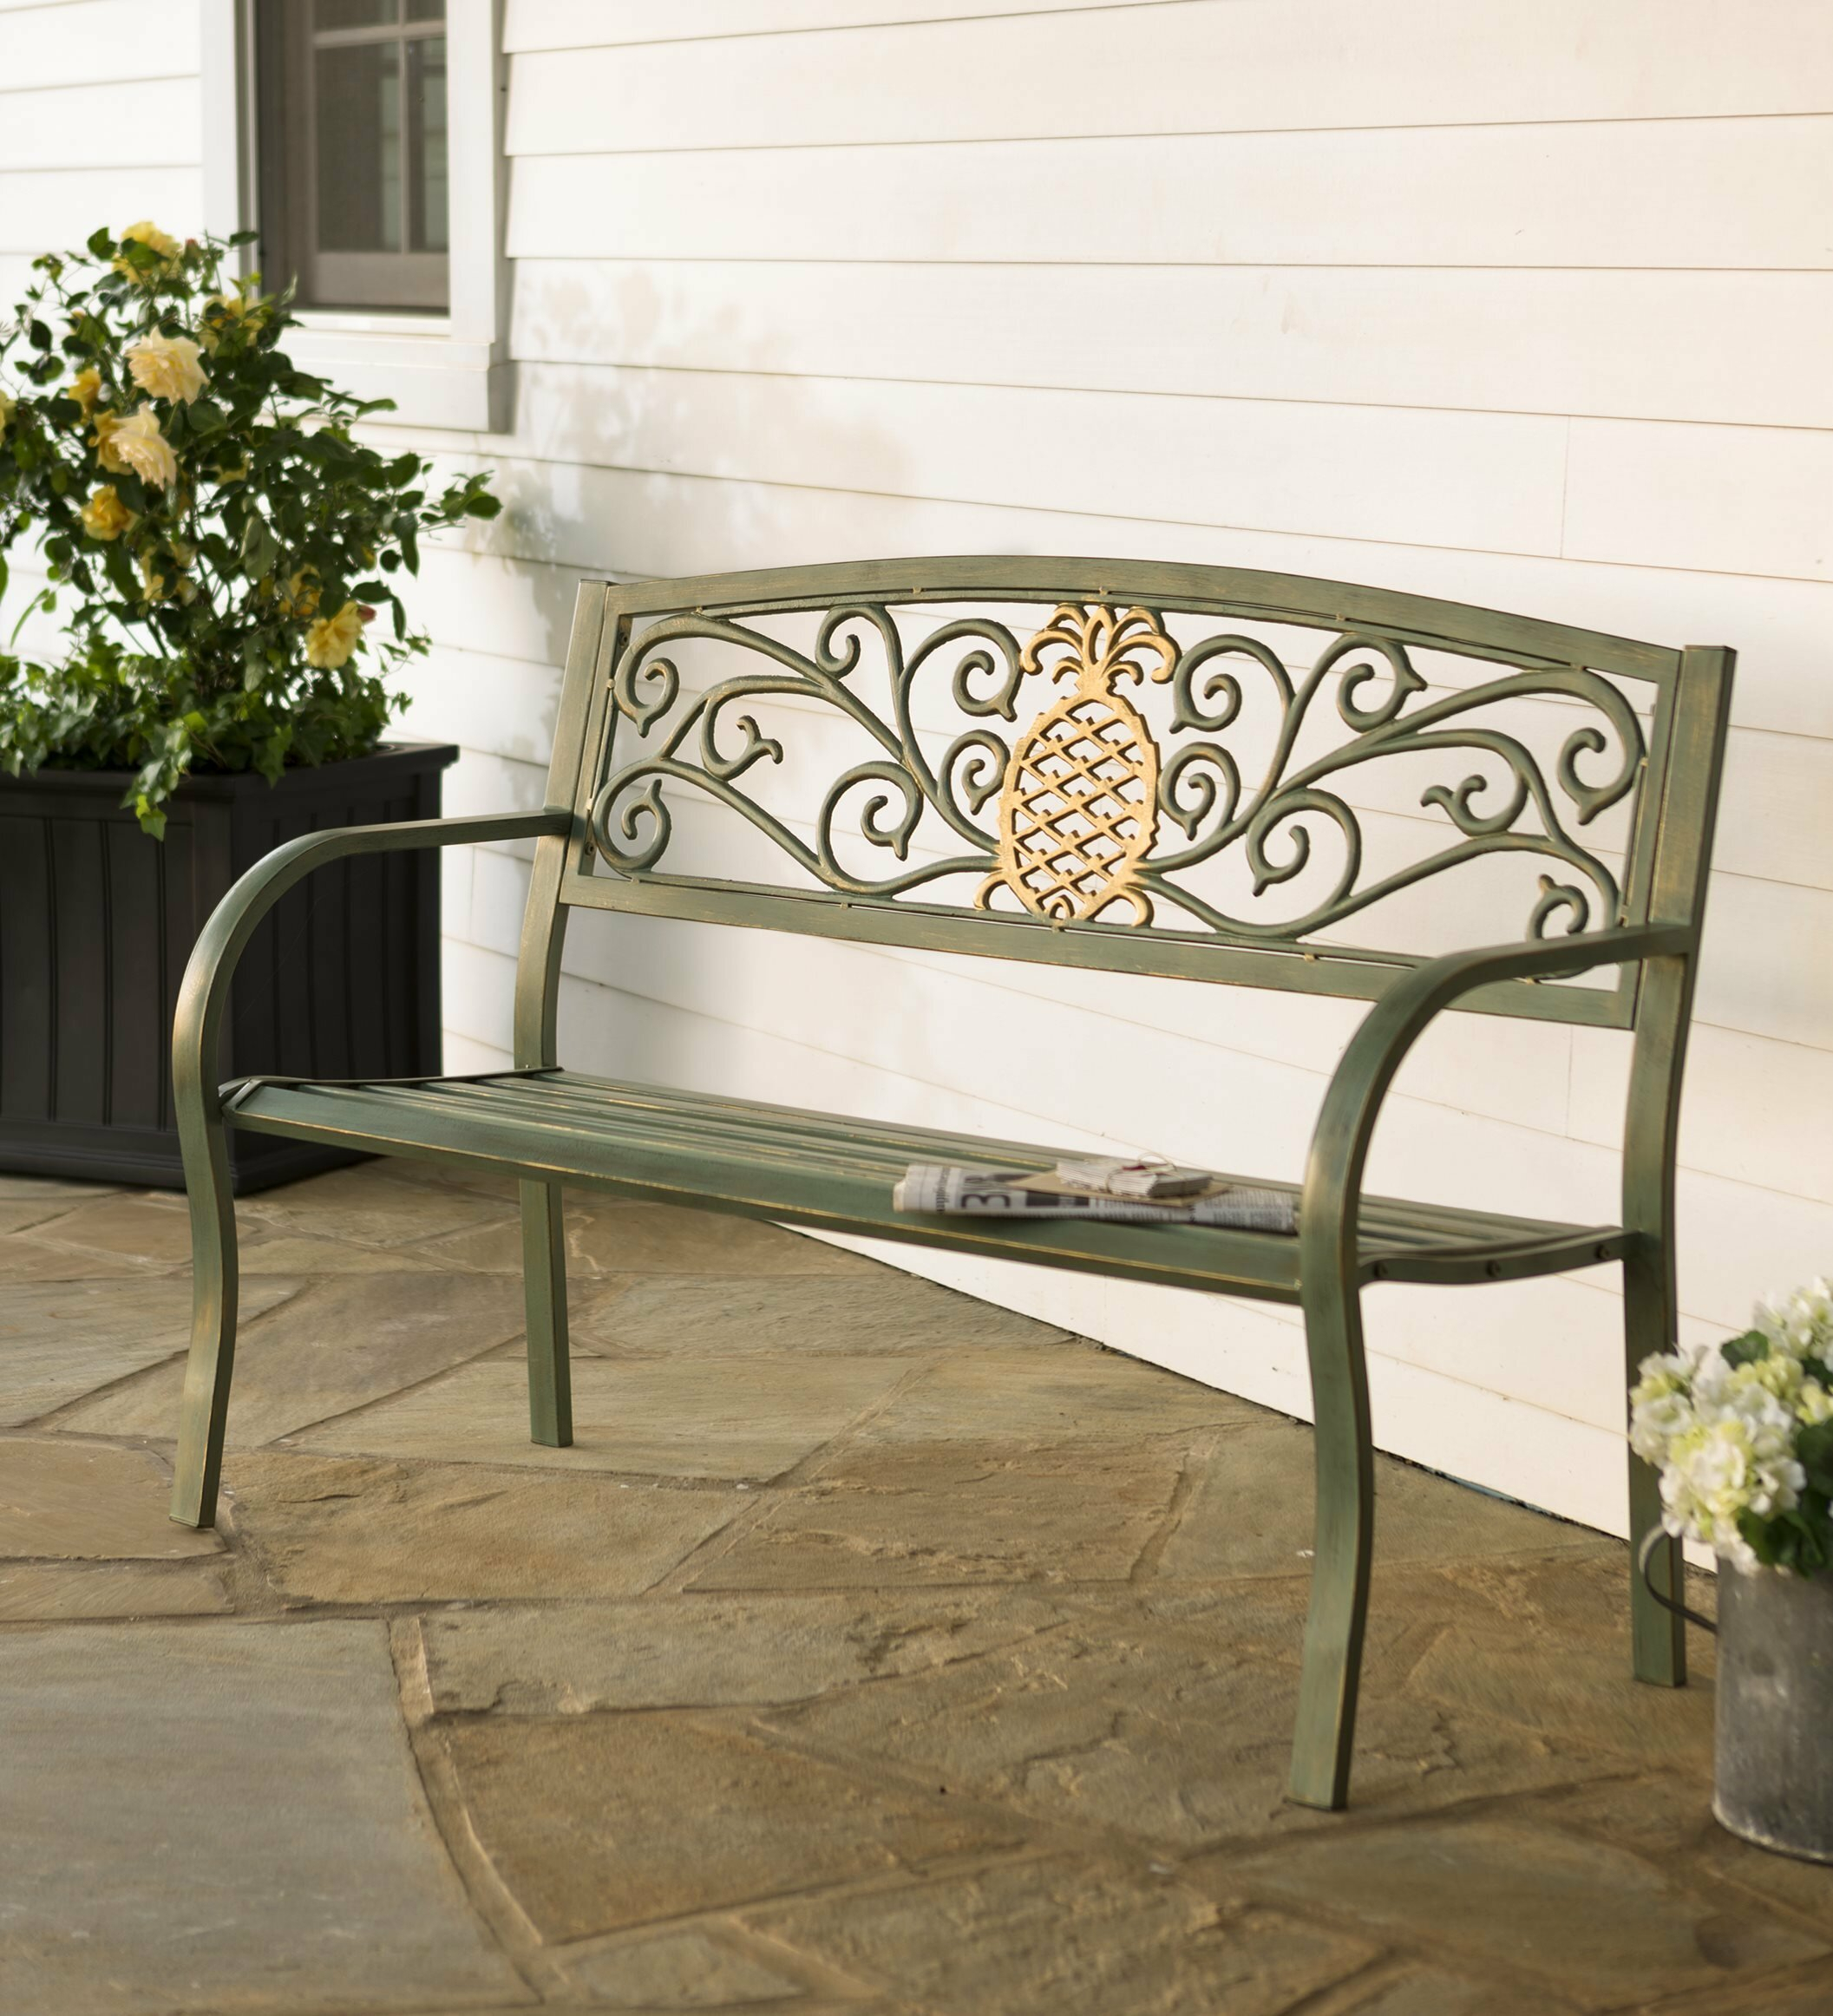 Pineapple Metal Garden Bench Intended For Celtic Knot Iron Garden Benches (View 12 of 25)